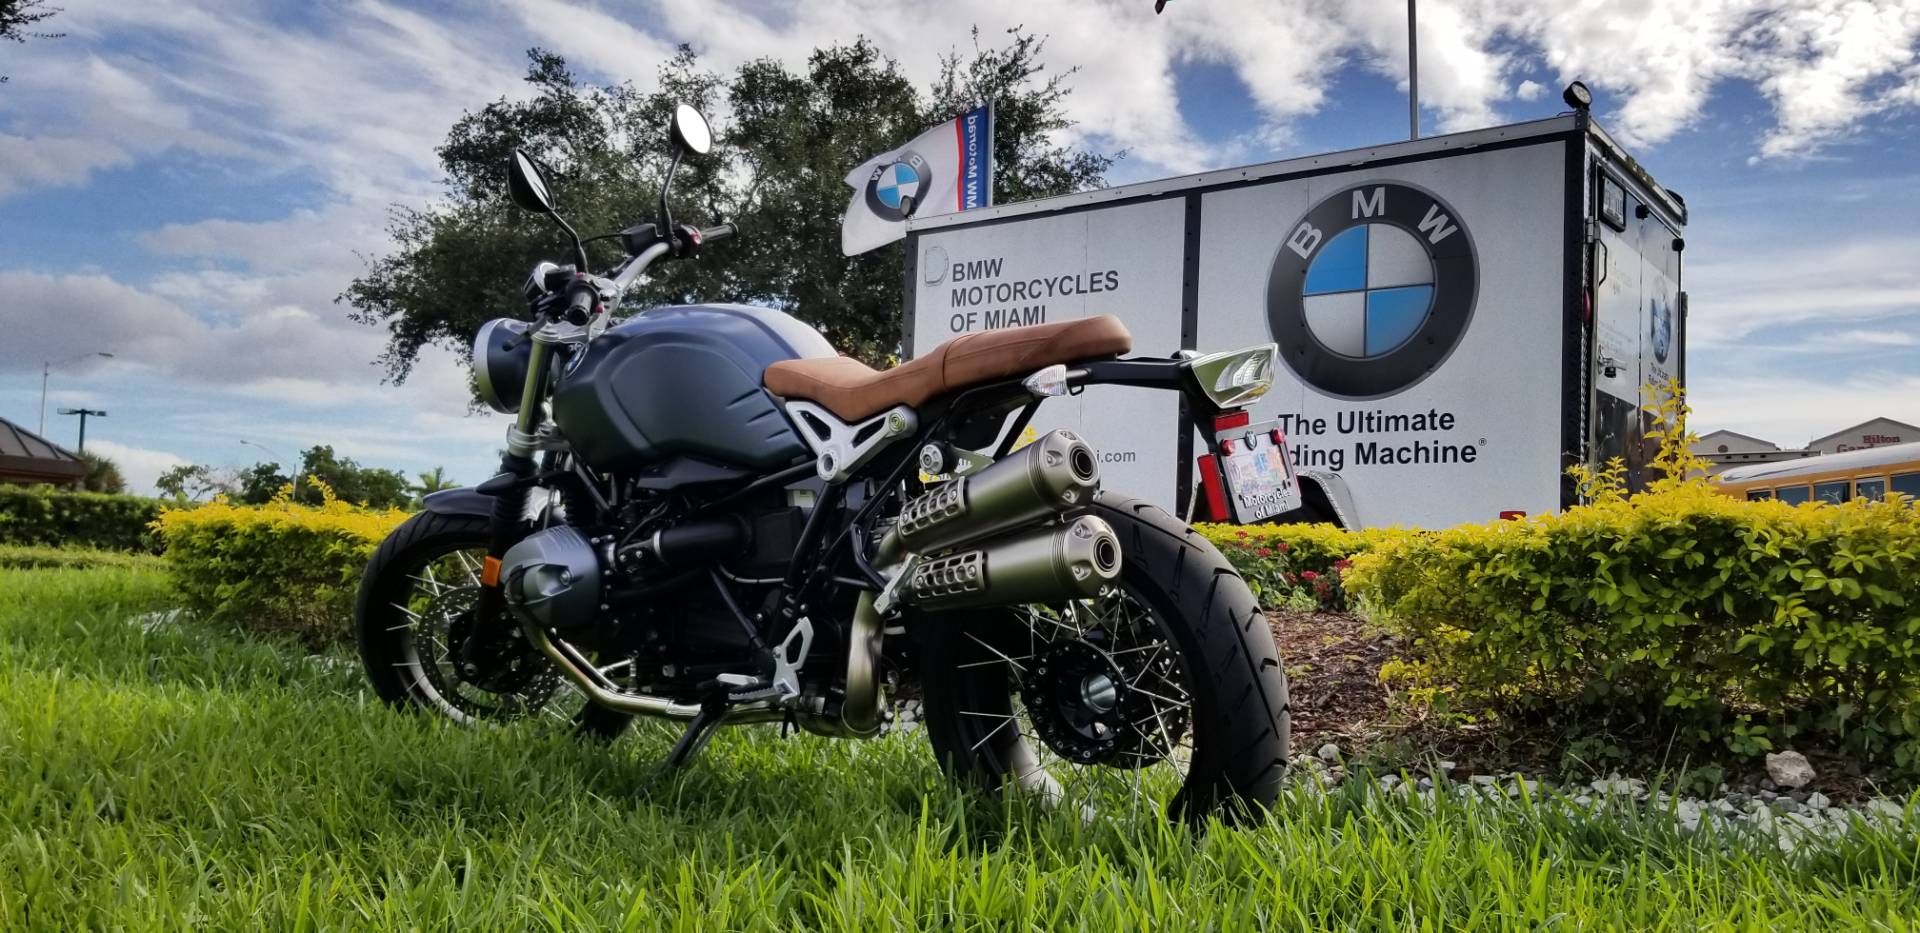 New 2019 BMW R NineT Scrambler for sale, BMW for sale, BMW Motorcycle Café Racer, new BMW Scrambler, Srambler, BMW. BMW Motorcycles of Miami, Motorcycles of Miami - Photo 8